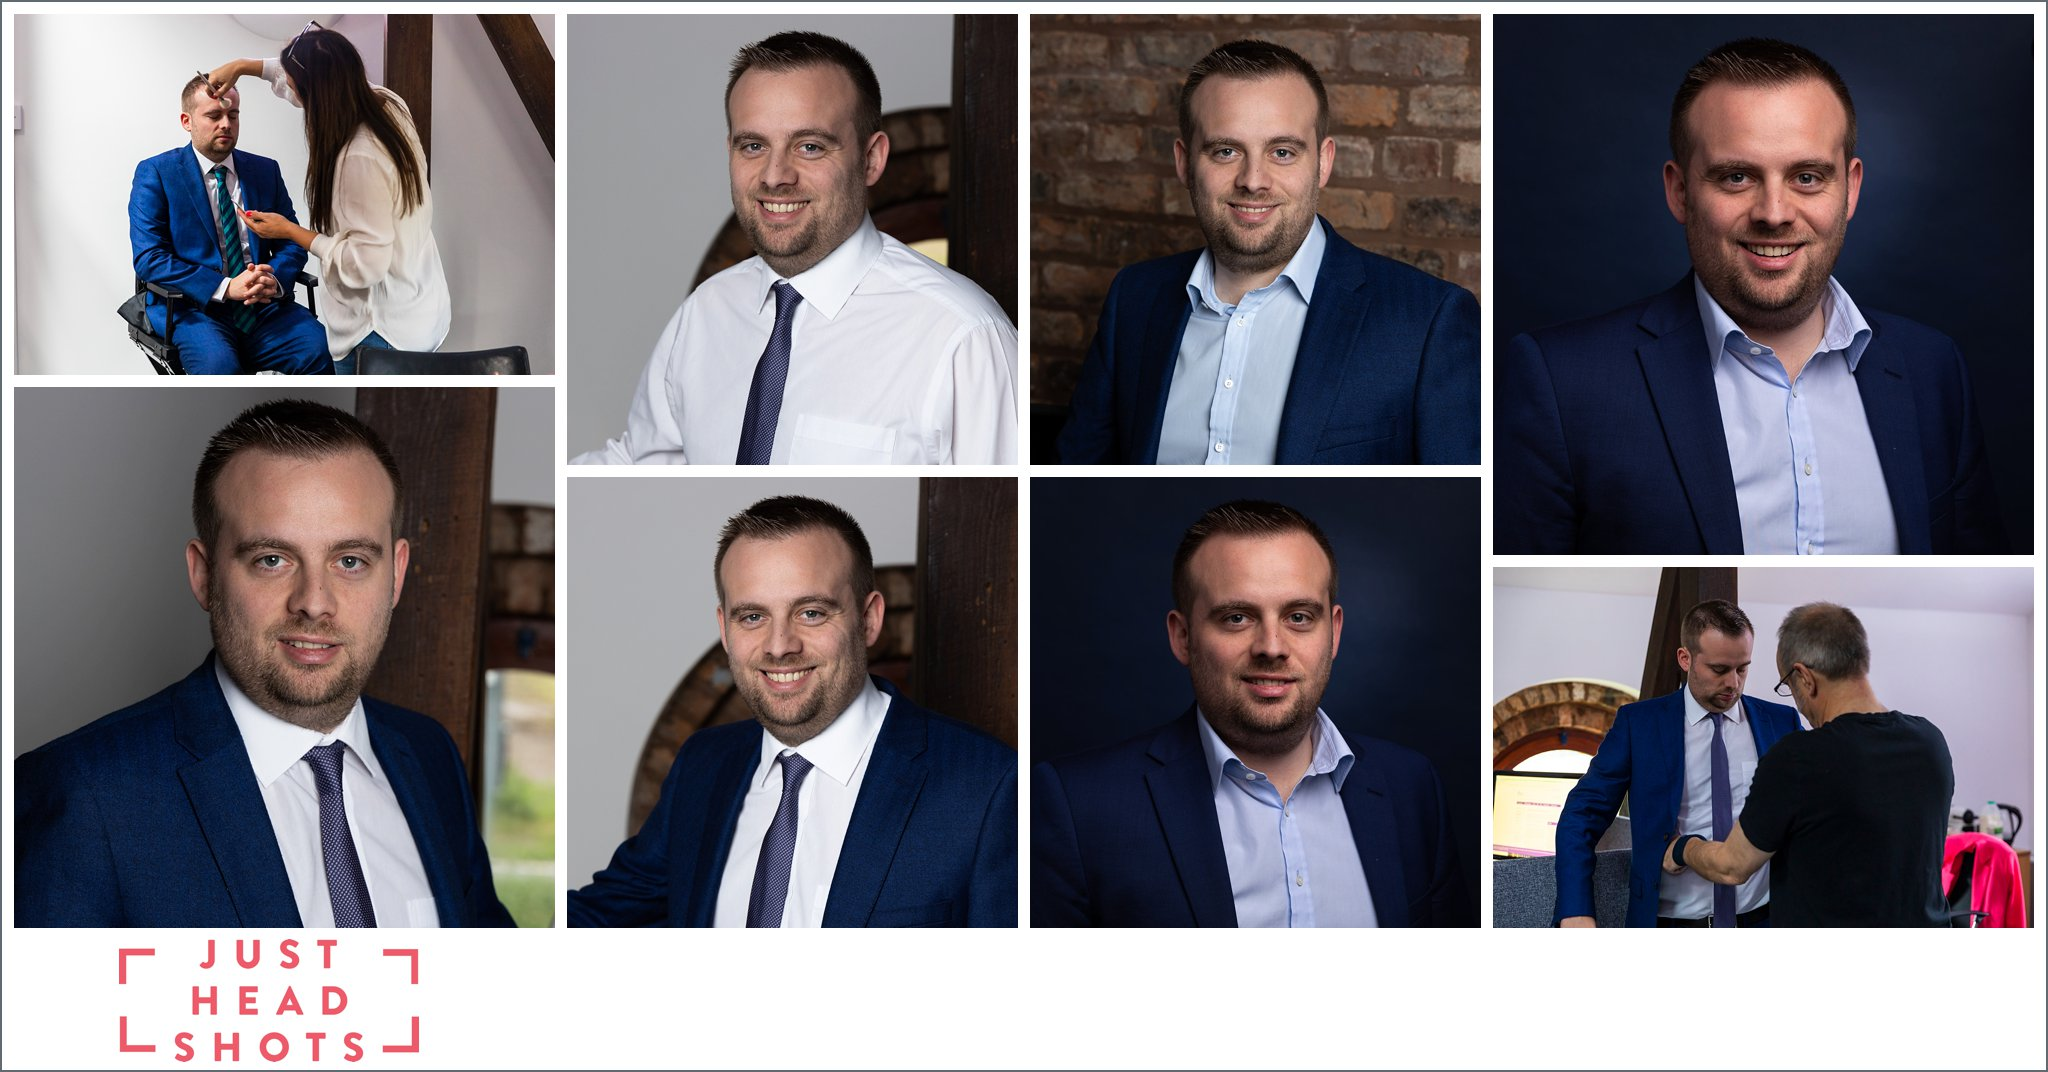 Professional headshots photos taken in Warrington of dark haired man in suit against dark blue backgrounds and against natural backgrounds with behind the scenes photos